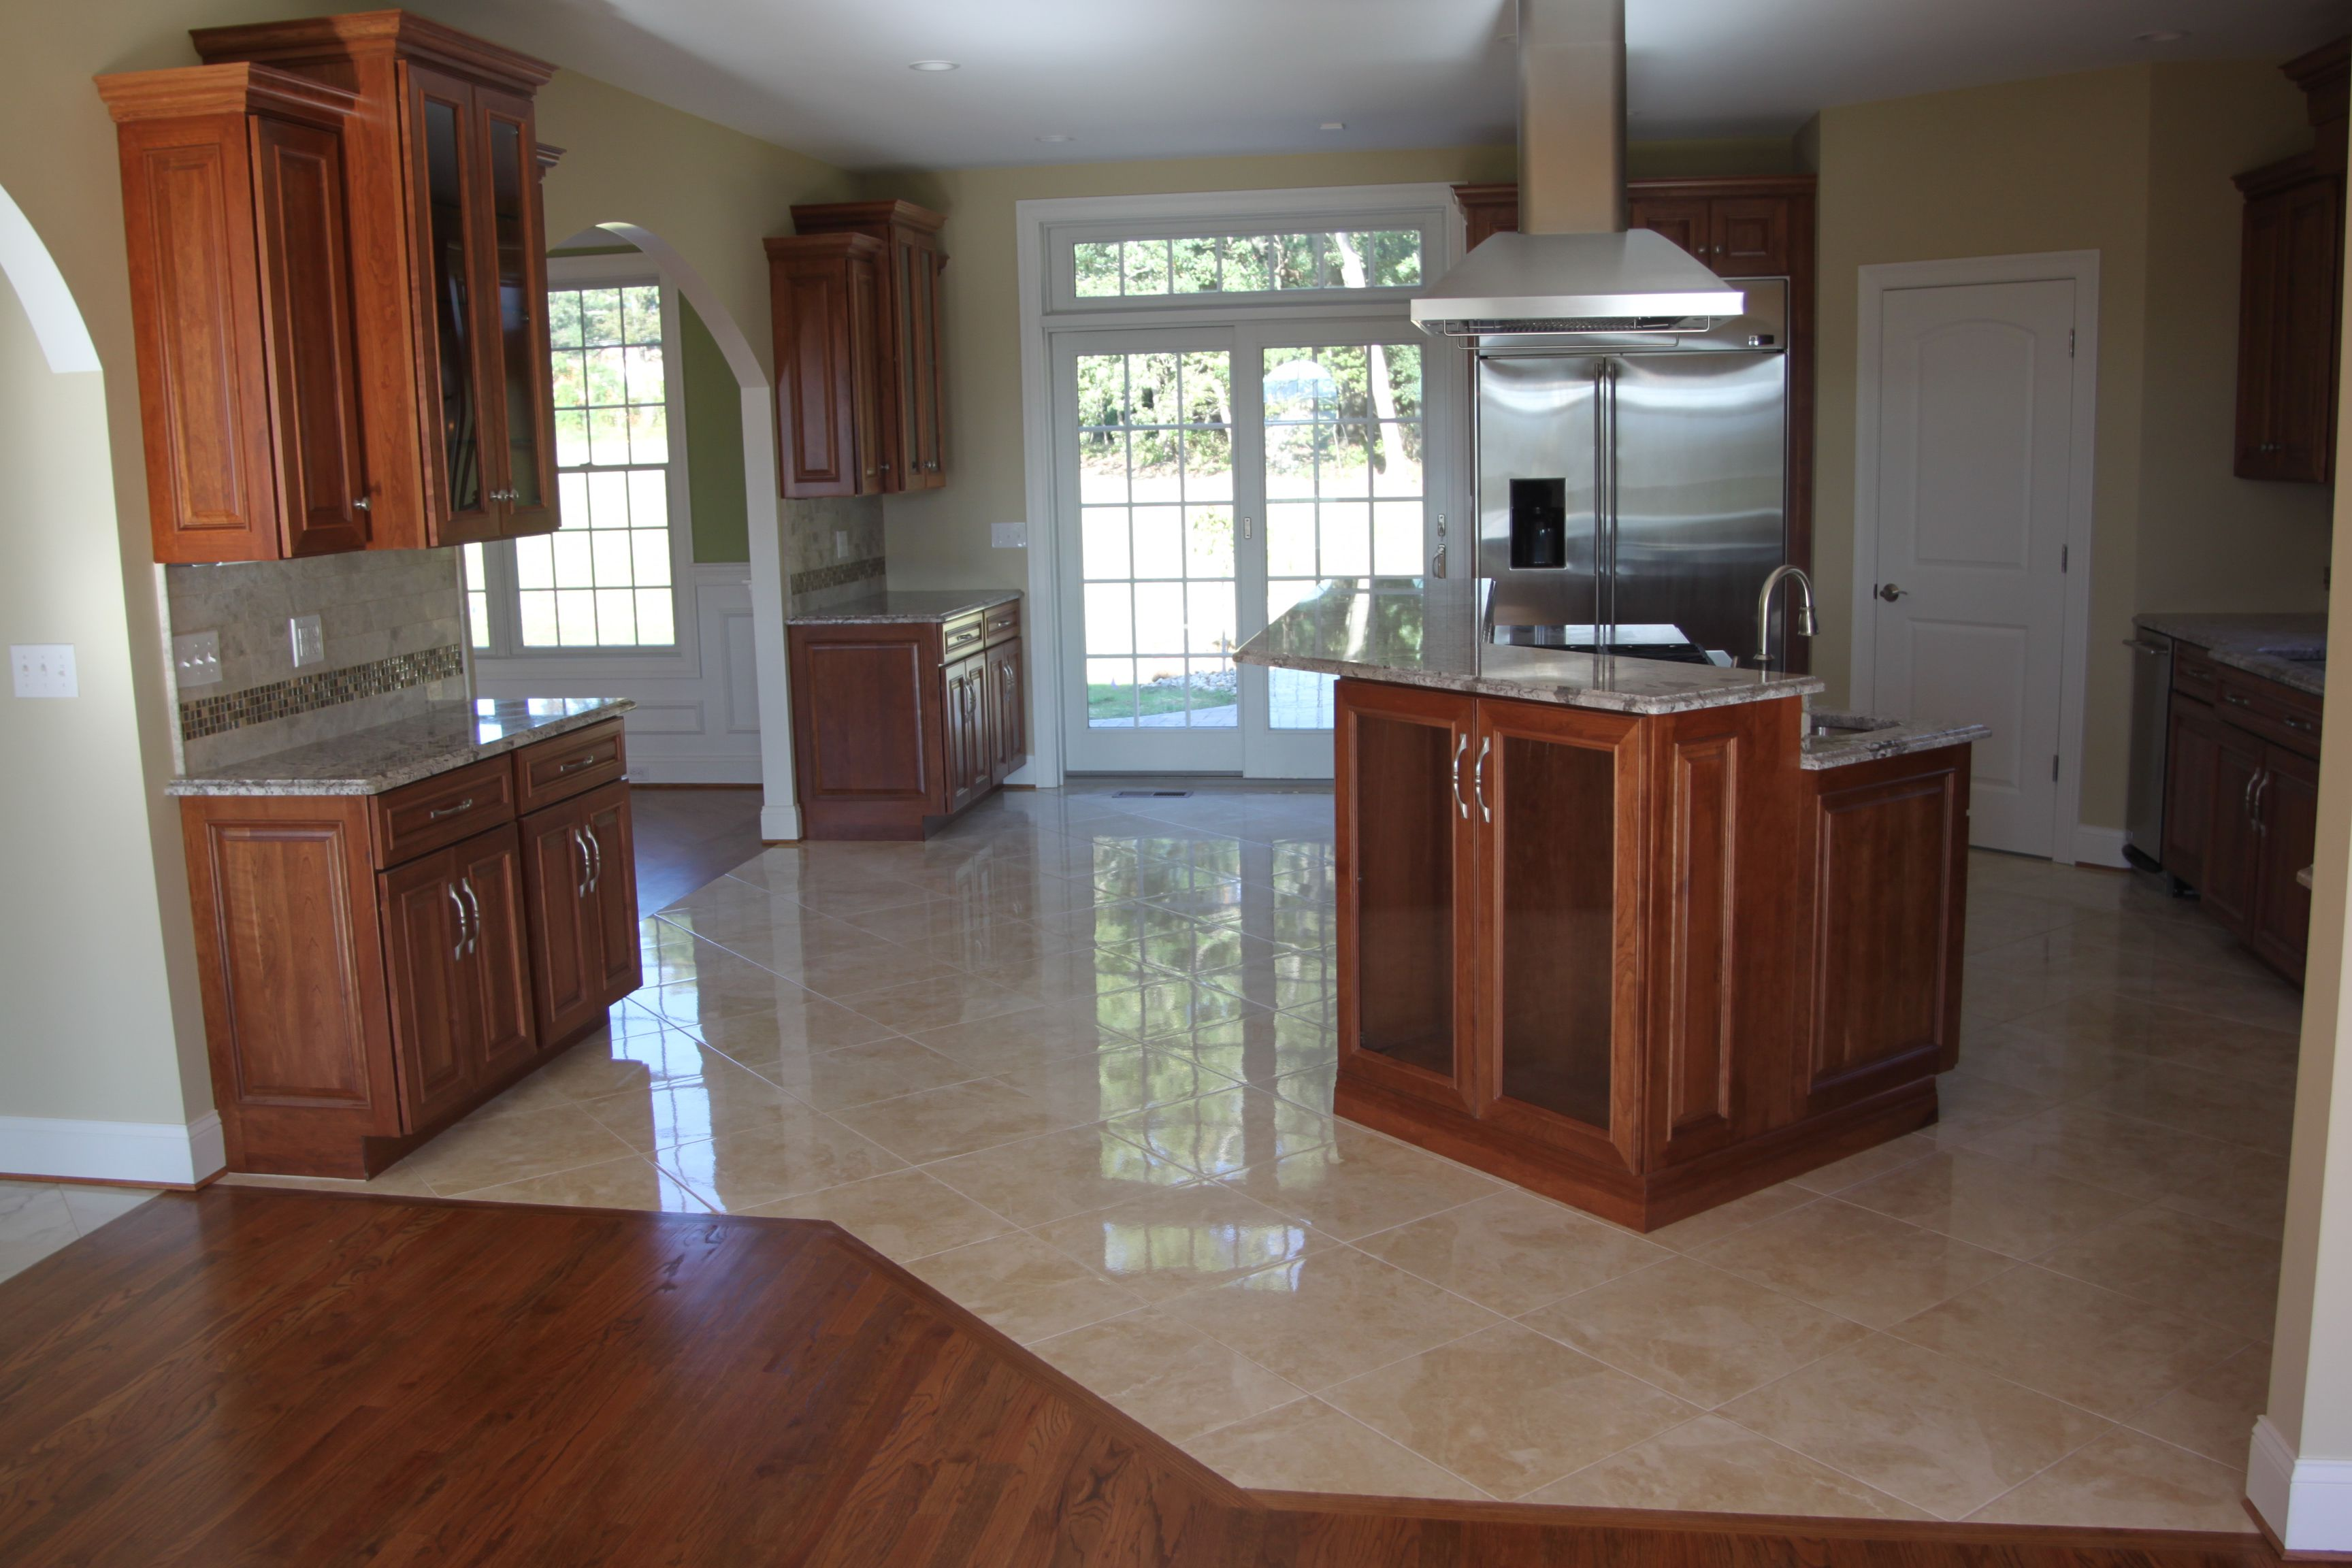 Floor tile designs ideas to enhance your floor appearance for Floors tiles for kitchen